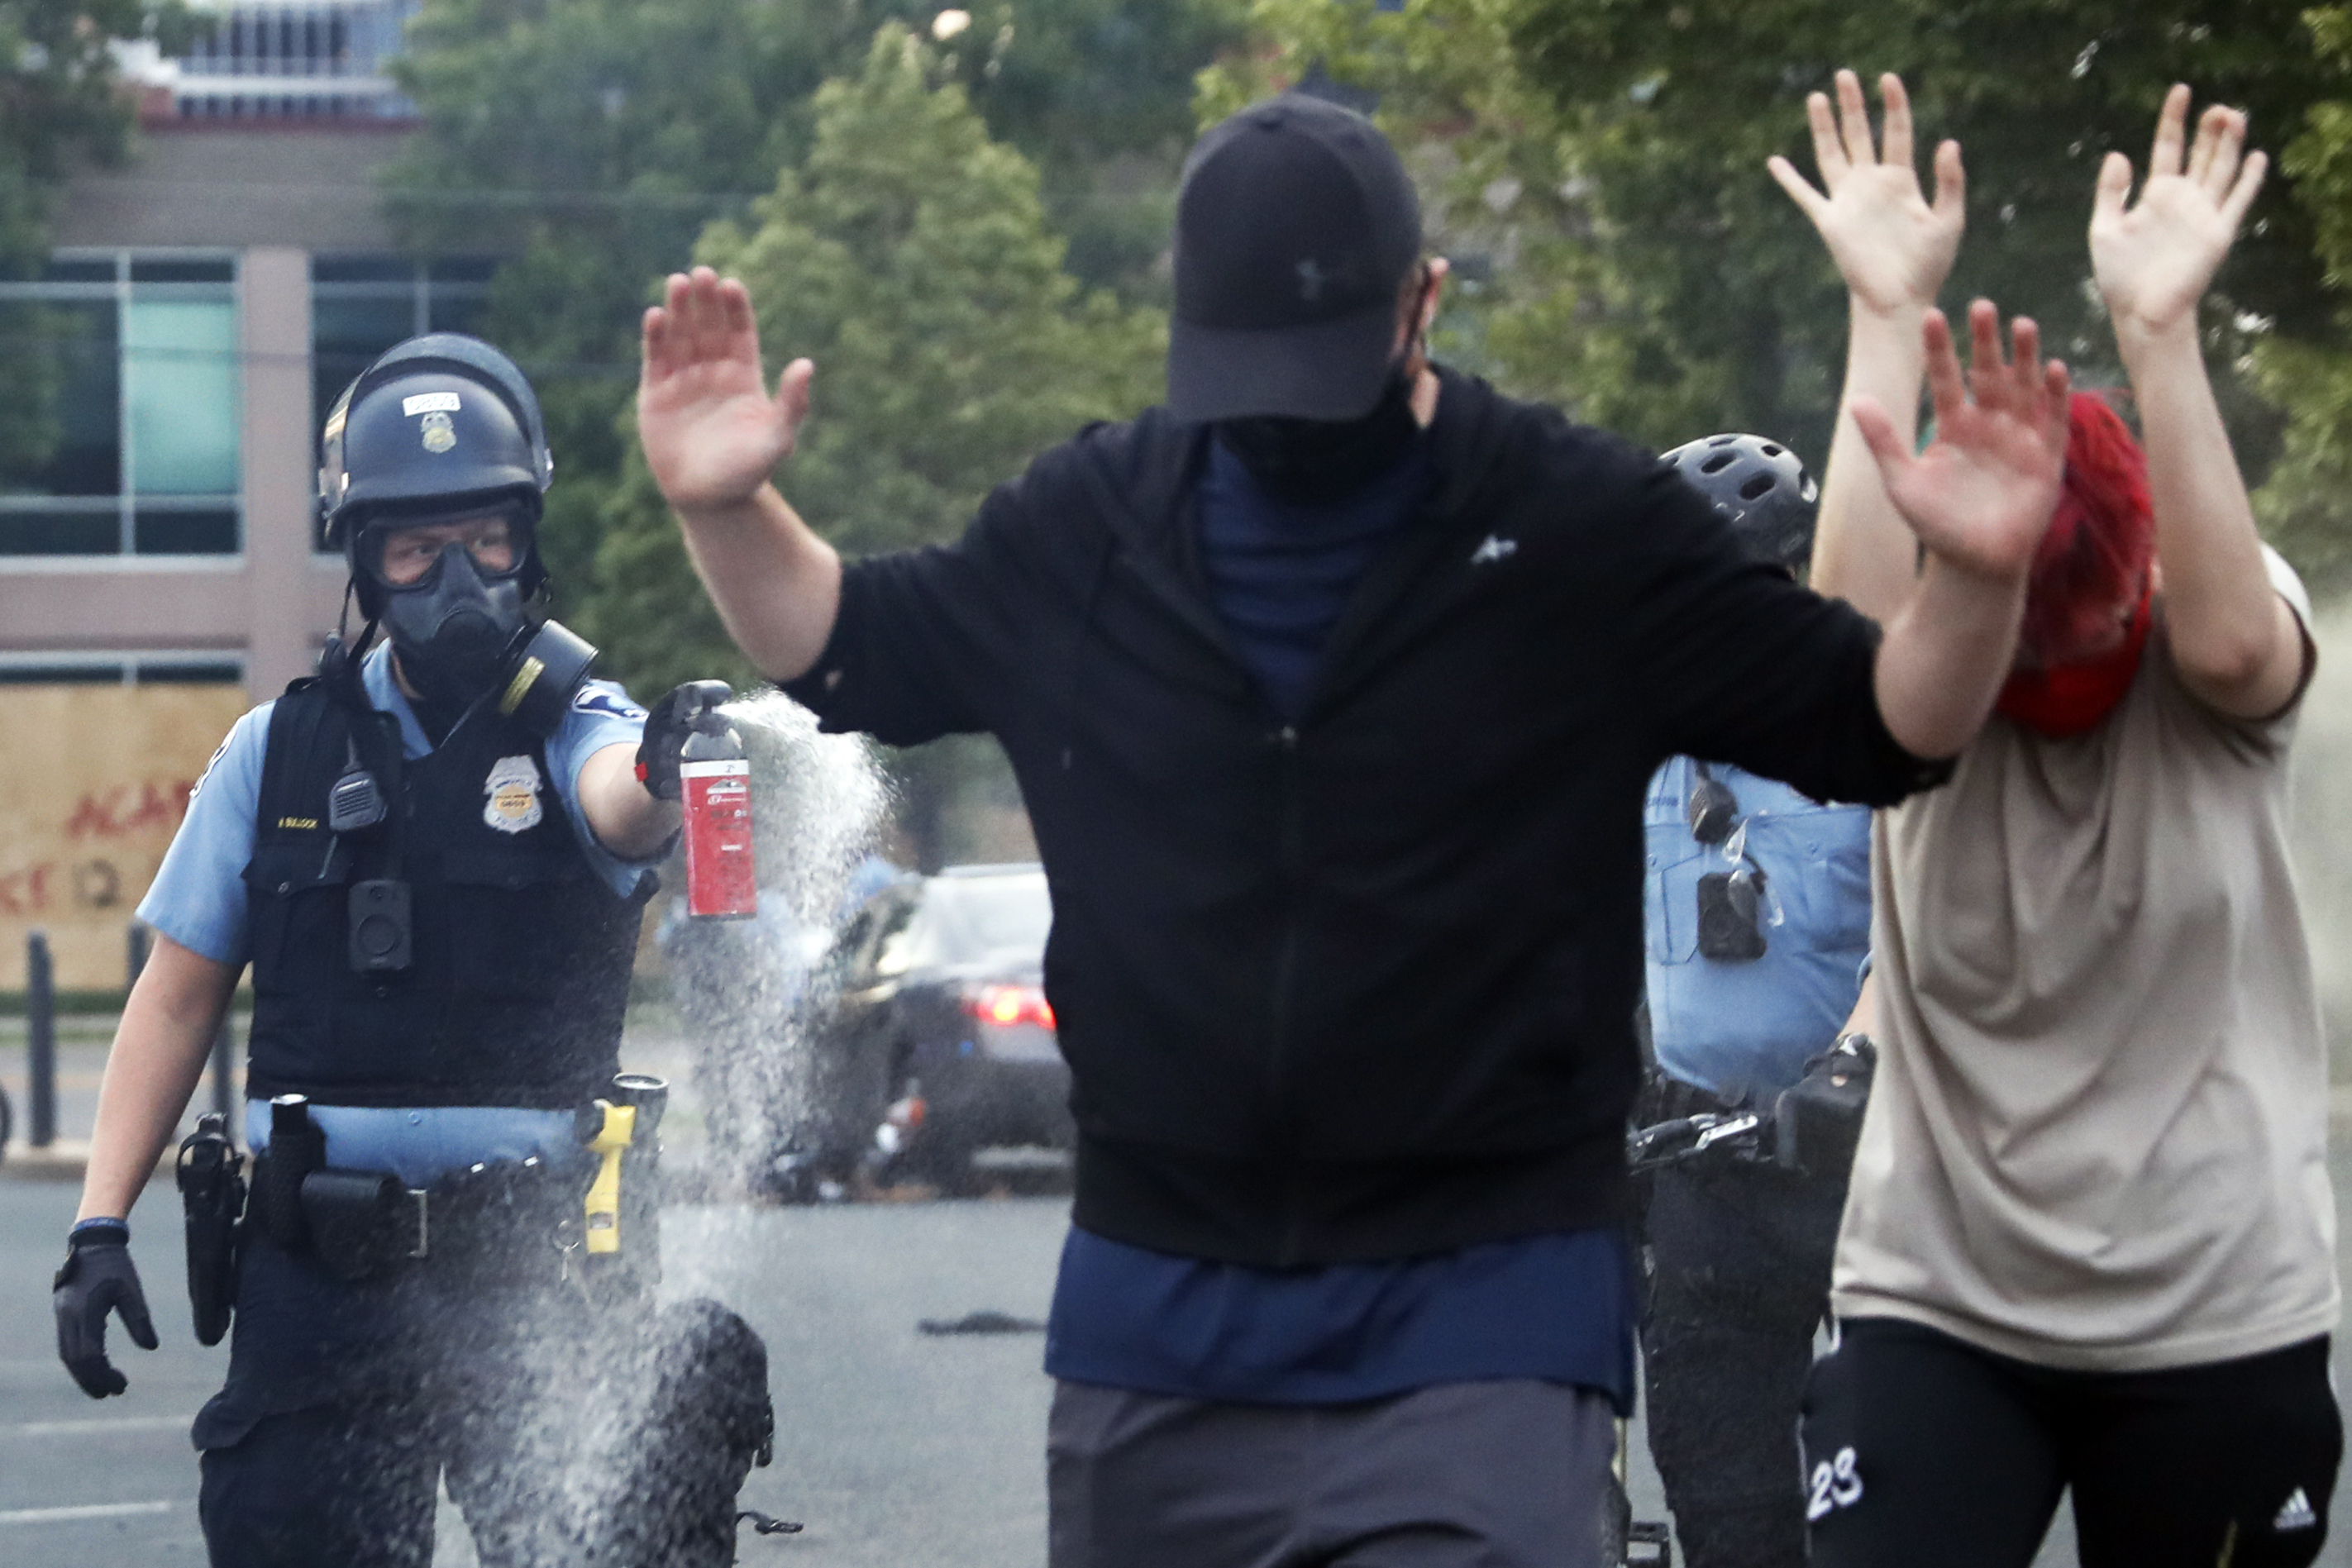 An officer points pepper spray towards people after curfew on Sunday, May 31, 2020 in Minneapolis. Protests continued following the death of George Floyd, who died after being restrained by Minneapolis police officers on Memorial Day. (AP Photo/John Minchillo)